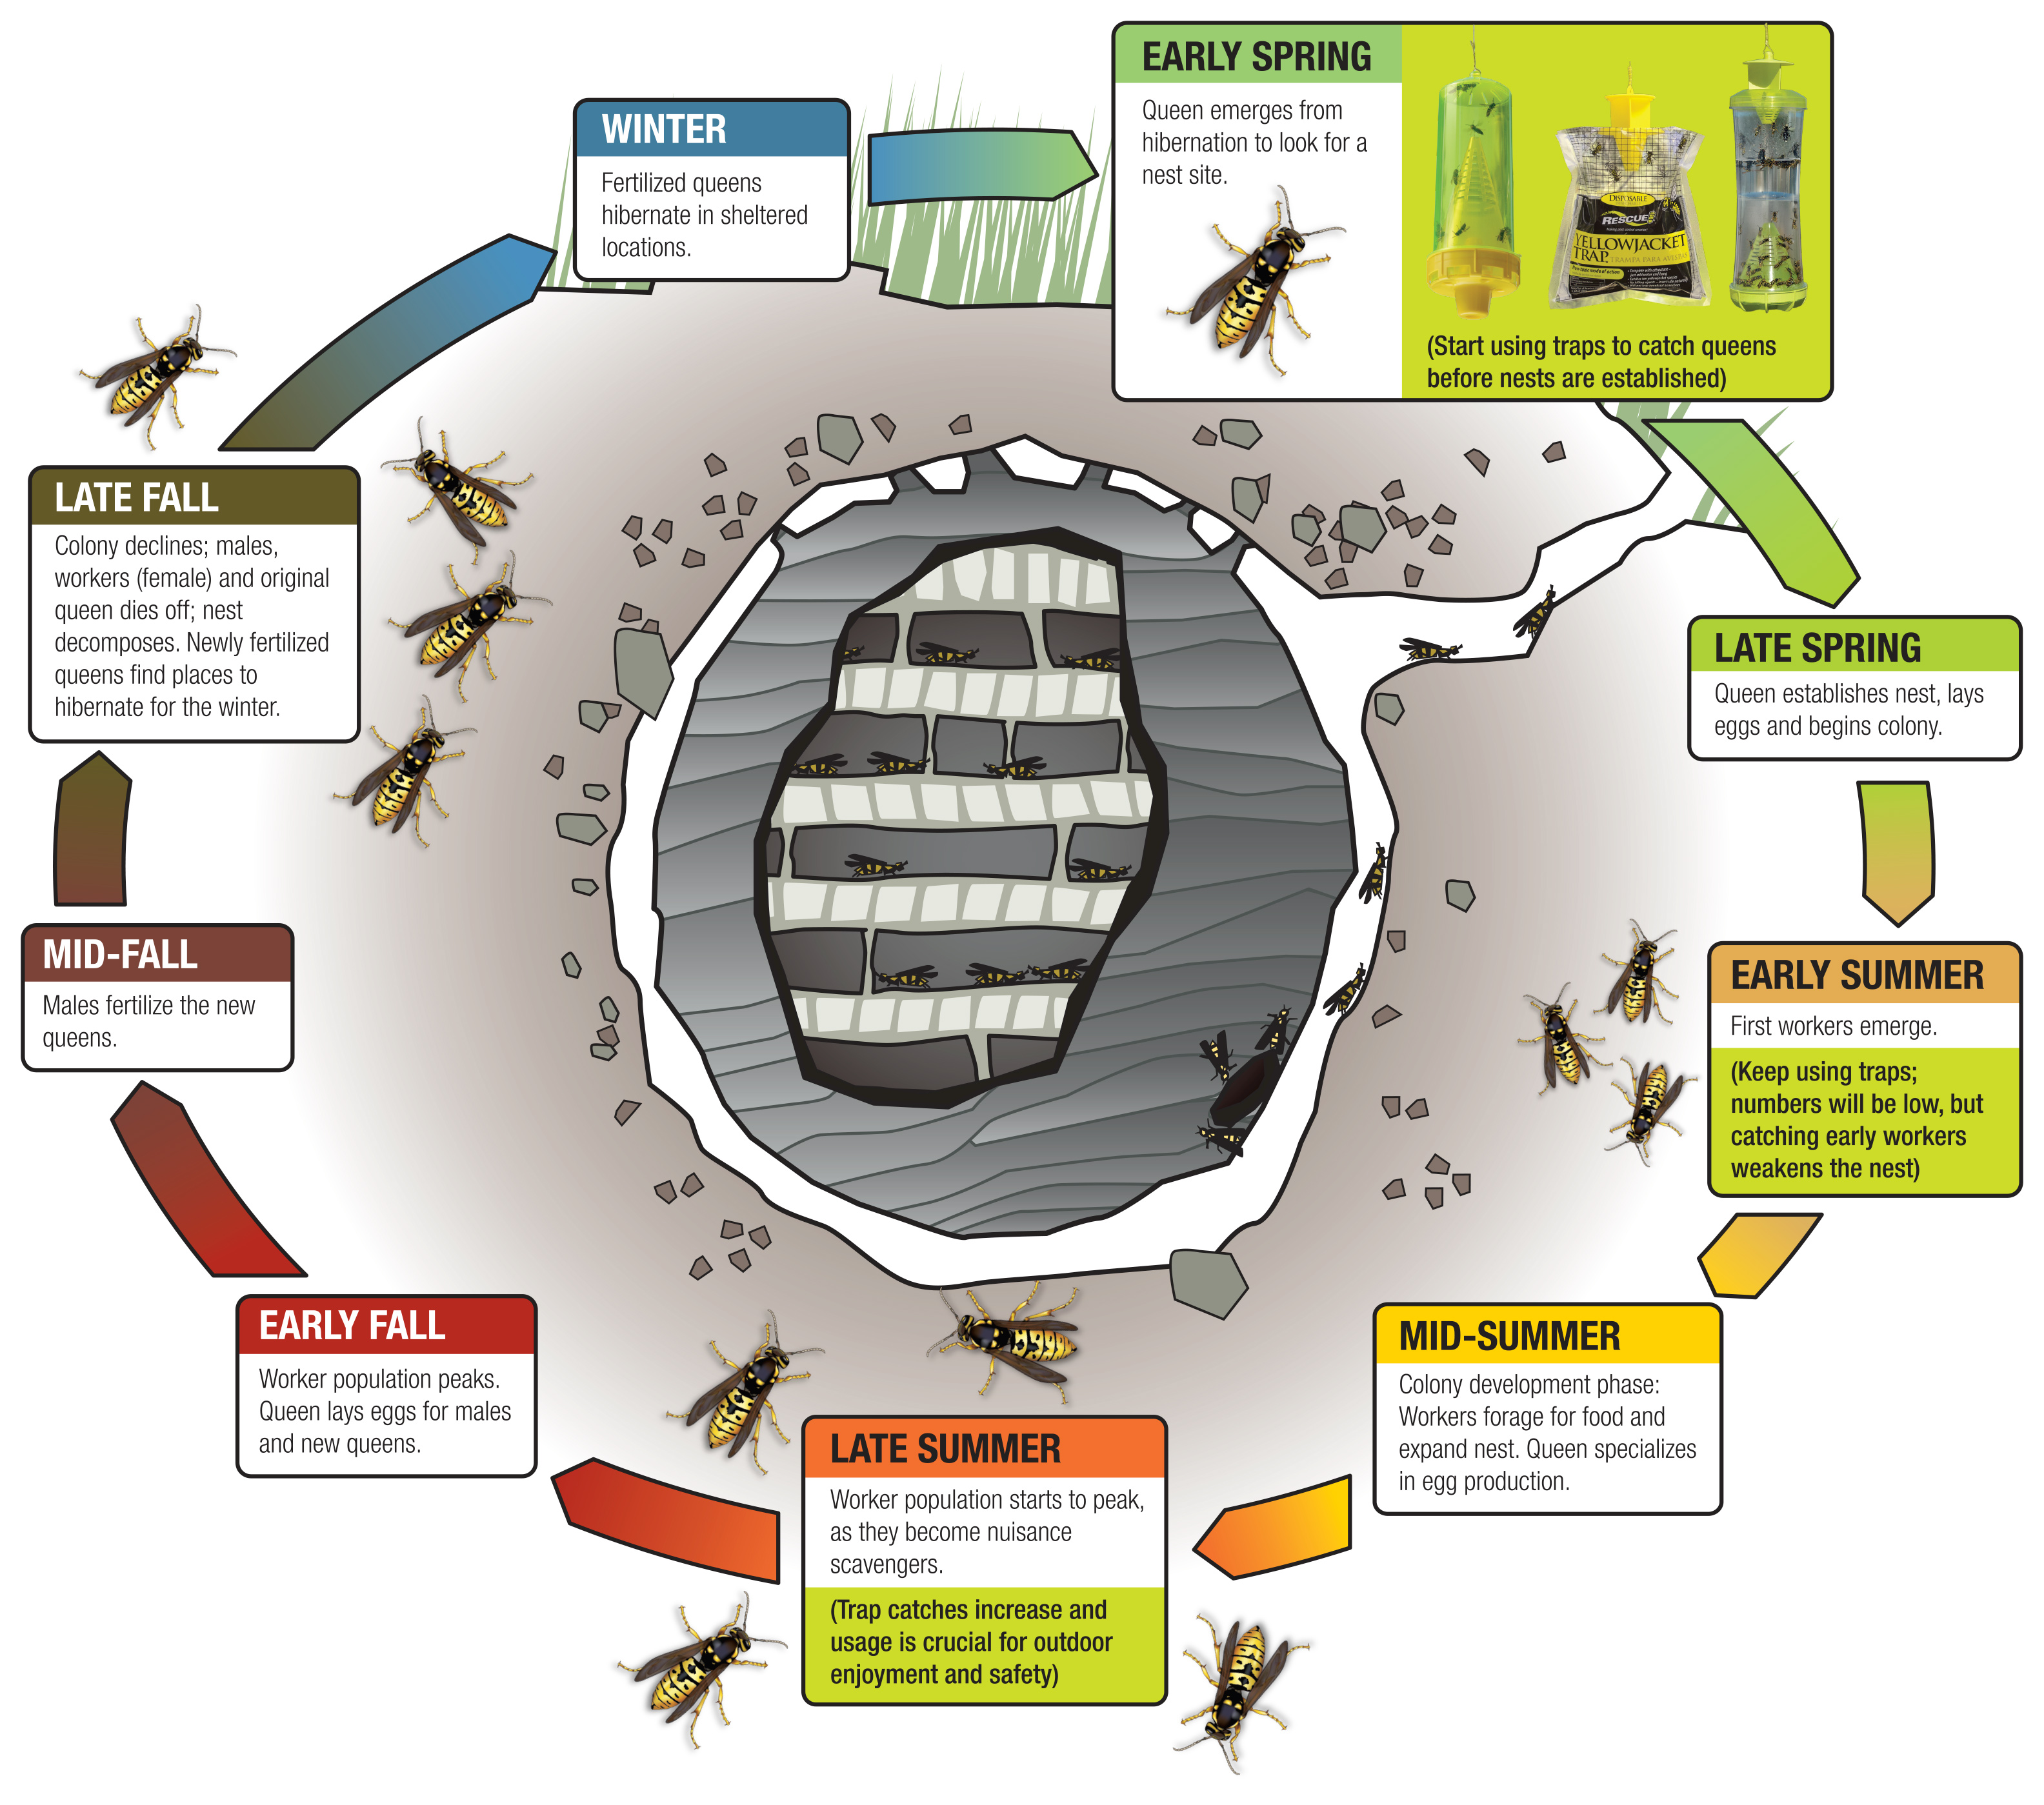 Yellow jackets live in the ground - Back To School Time Is Also Peak Season For Dangerous Yellowjackets Back To School Time Is Also Peak Season For Dangerous Yellowjackets